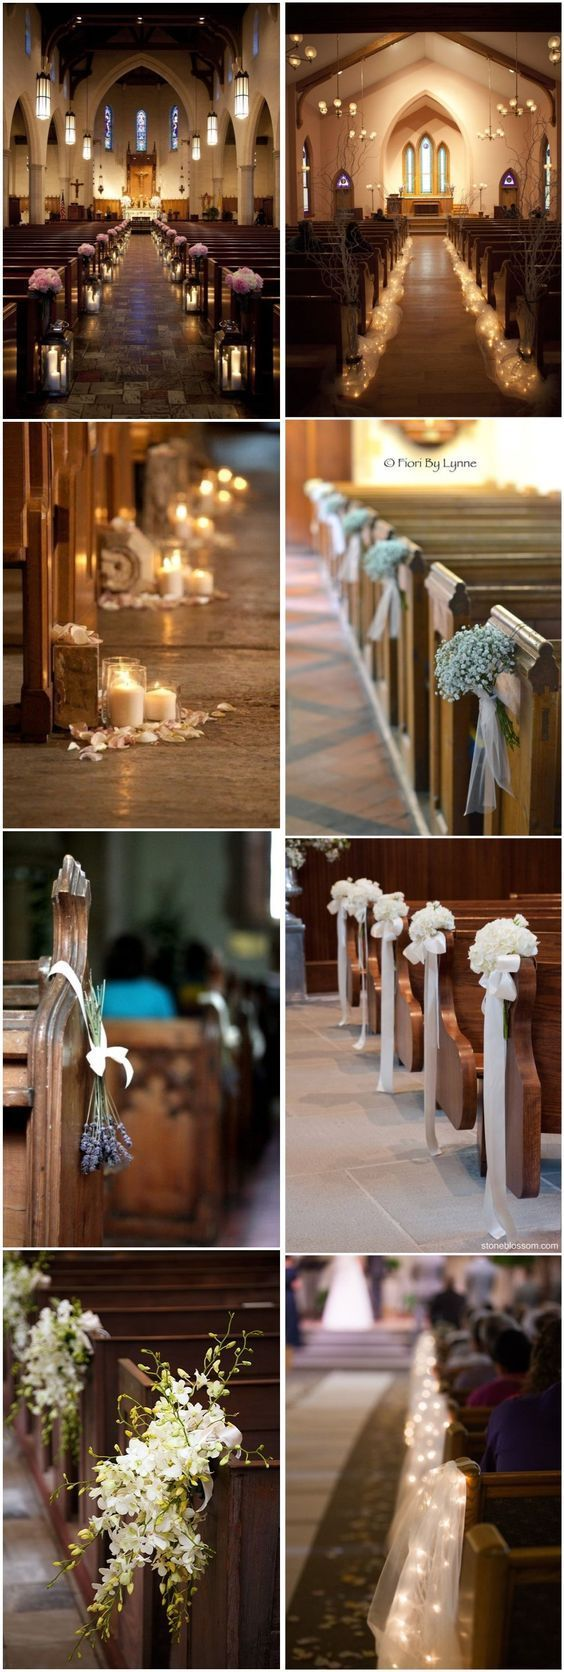 Wedding Decorations » 21 Stunning Church Wedding Aisle Decoration Ideas to Steal » ❤️ See more: http://www.weddinginclude.com/2017/05/stunning-church-wedding-aisle-decoration-ideas-to-steal/ #weddingdecorations